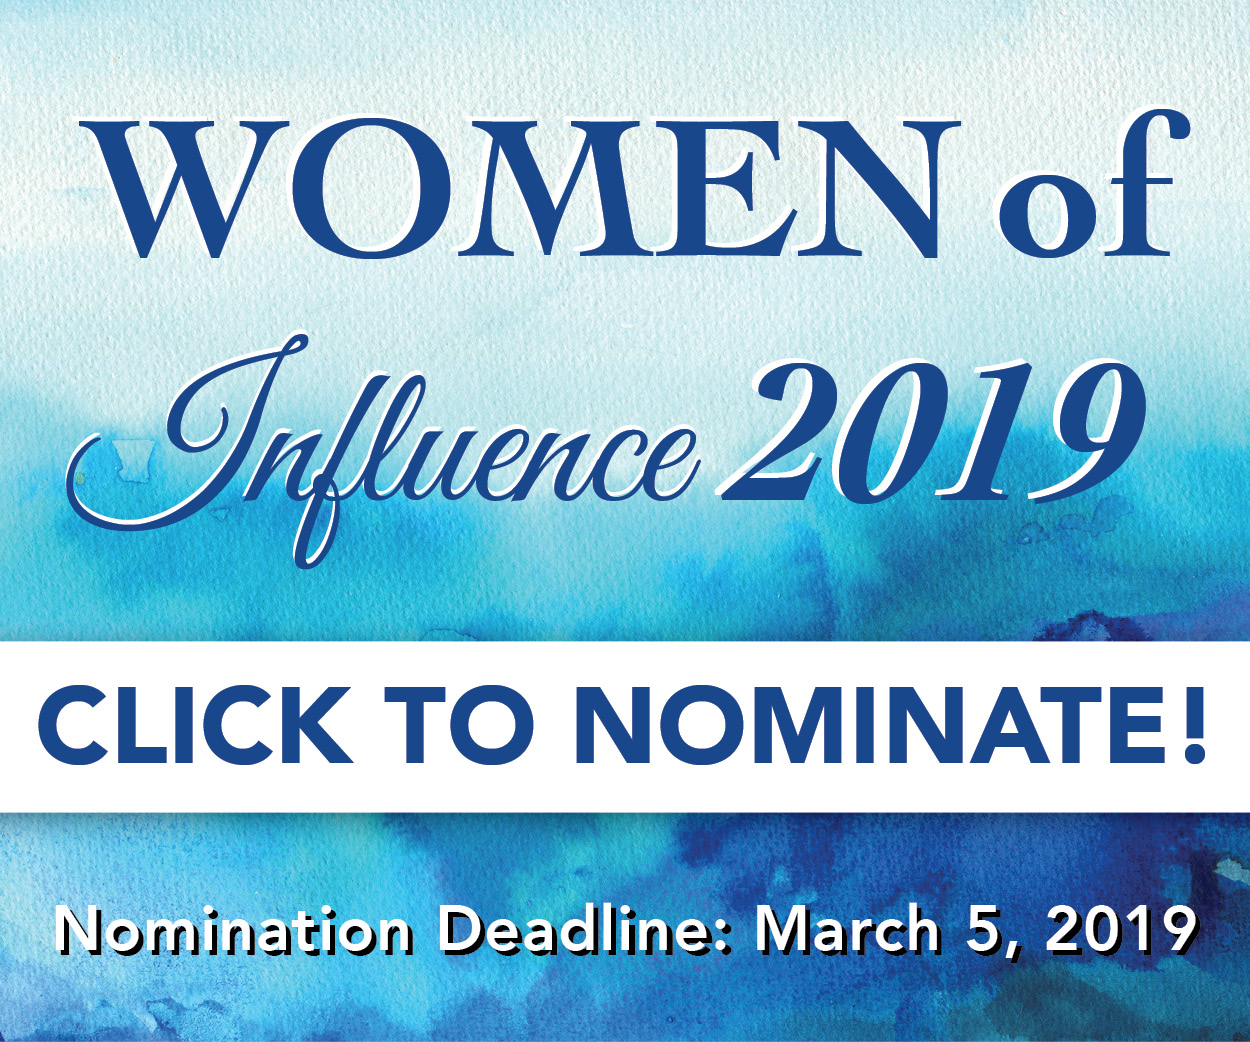 Women of Influence Nomination 2019